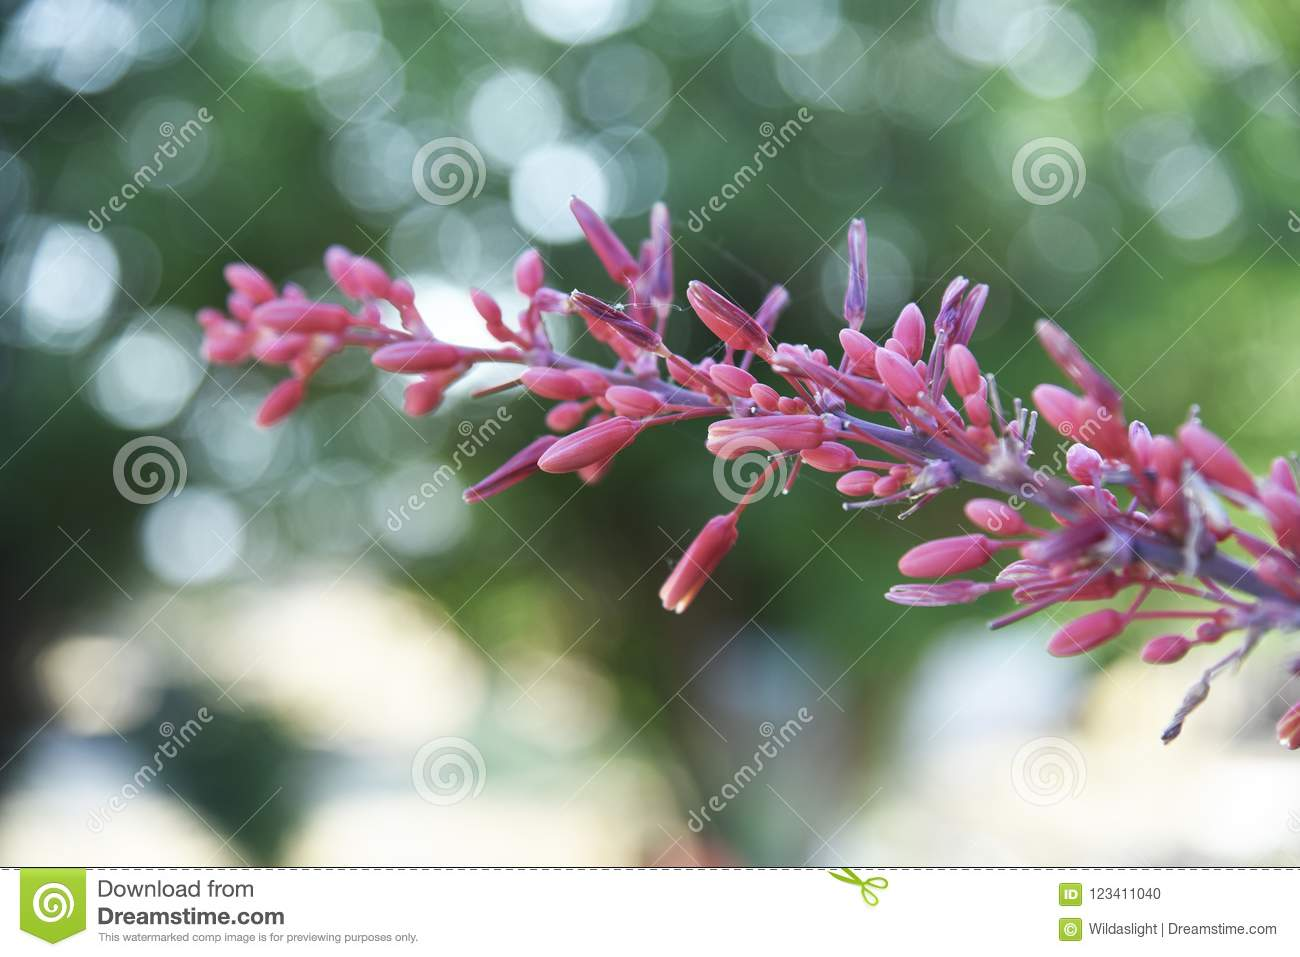 Beautiful pink yucca flowers about to bloom